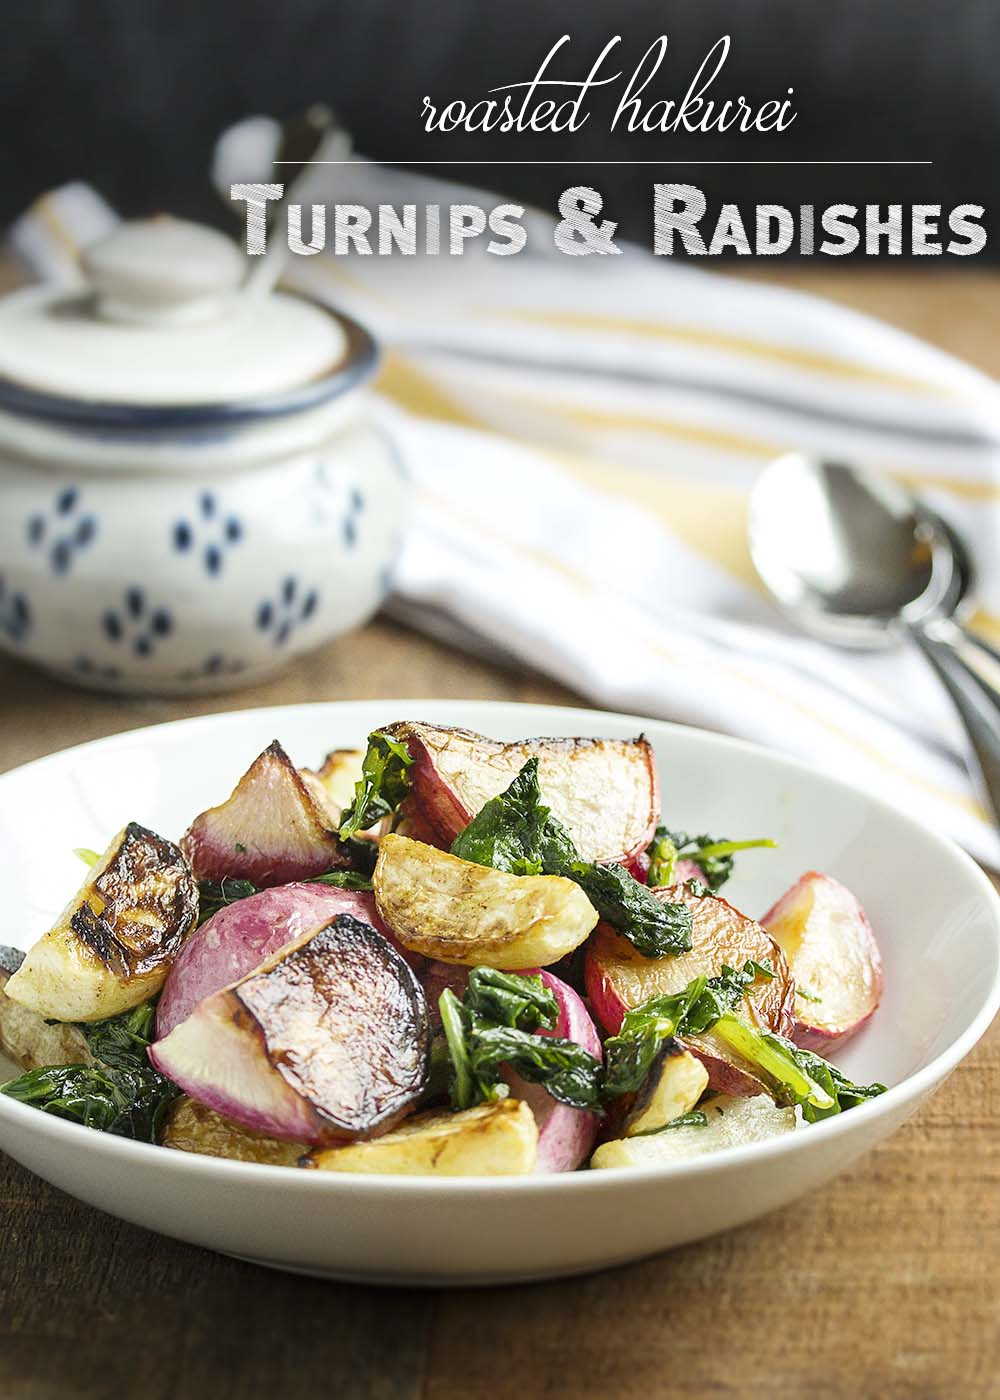 Roasted Turnips and Radishes - Sweet Hakurei turnips and young radishes are tossed with olive oil and roasted with their greens in this simple and satisfying side dish. | justalittlebitofbacon.com